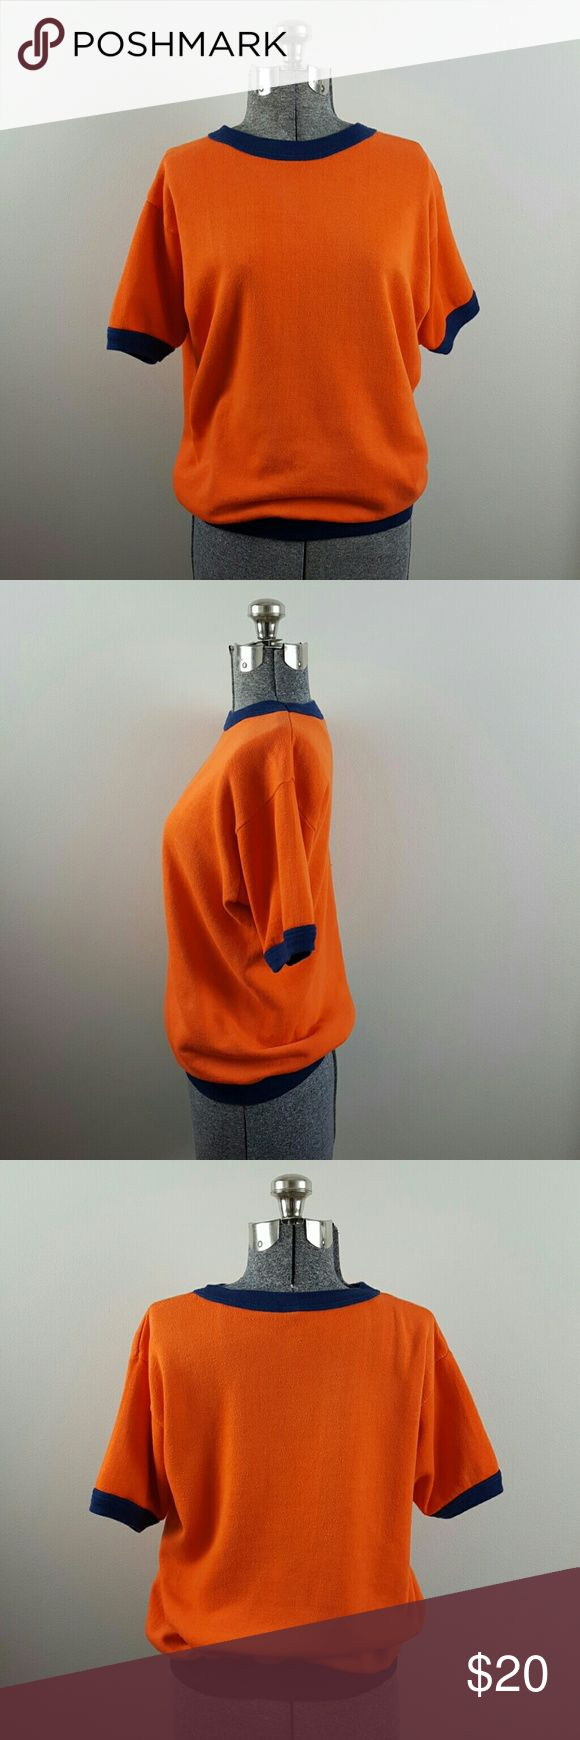 Vintage 70's/80's Orange Ringer Sweatshirt Vintage JC Penney orange and blue short-sleeved ringer sweatshirt. Vintage size XL but fits like a women's M and a men's S. Very slight pilling and 3 pinpoint blue dots near the back right shoulder, otherwise in good vintage condition. Vintage Tops Sweatshirts & Hoodies